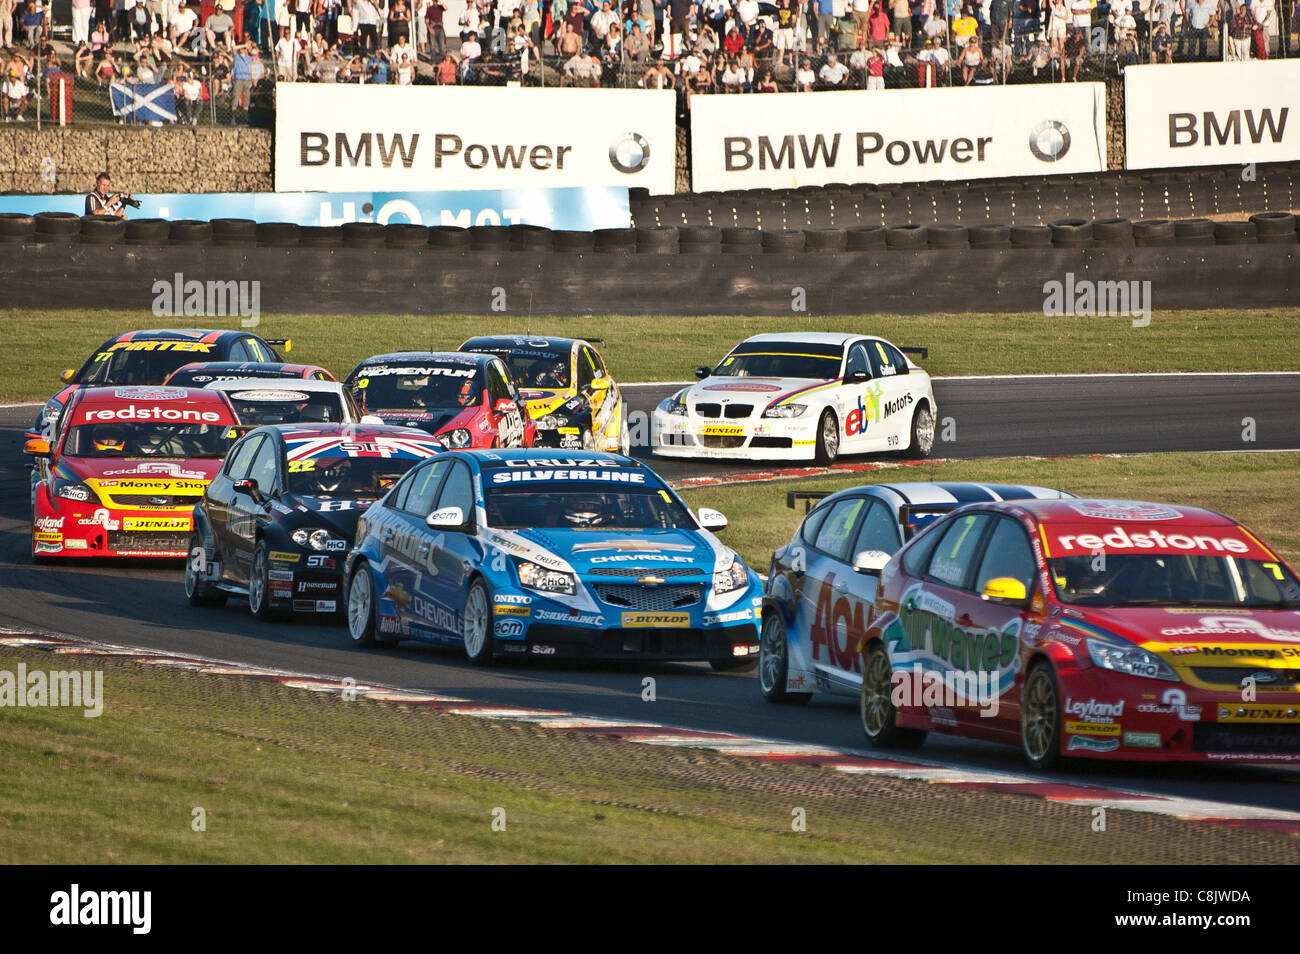 British Touring Car Championship action at Brands Hatch - Stock Image